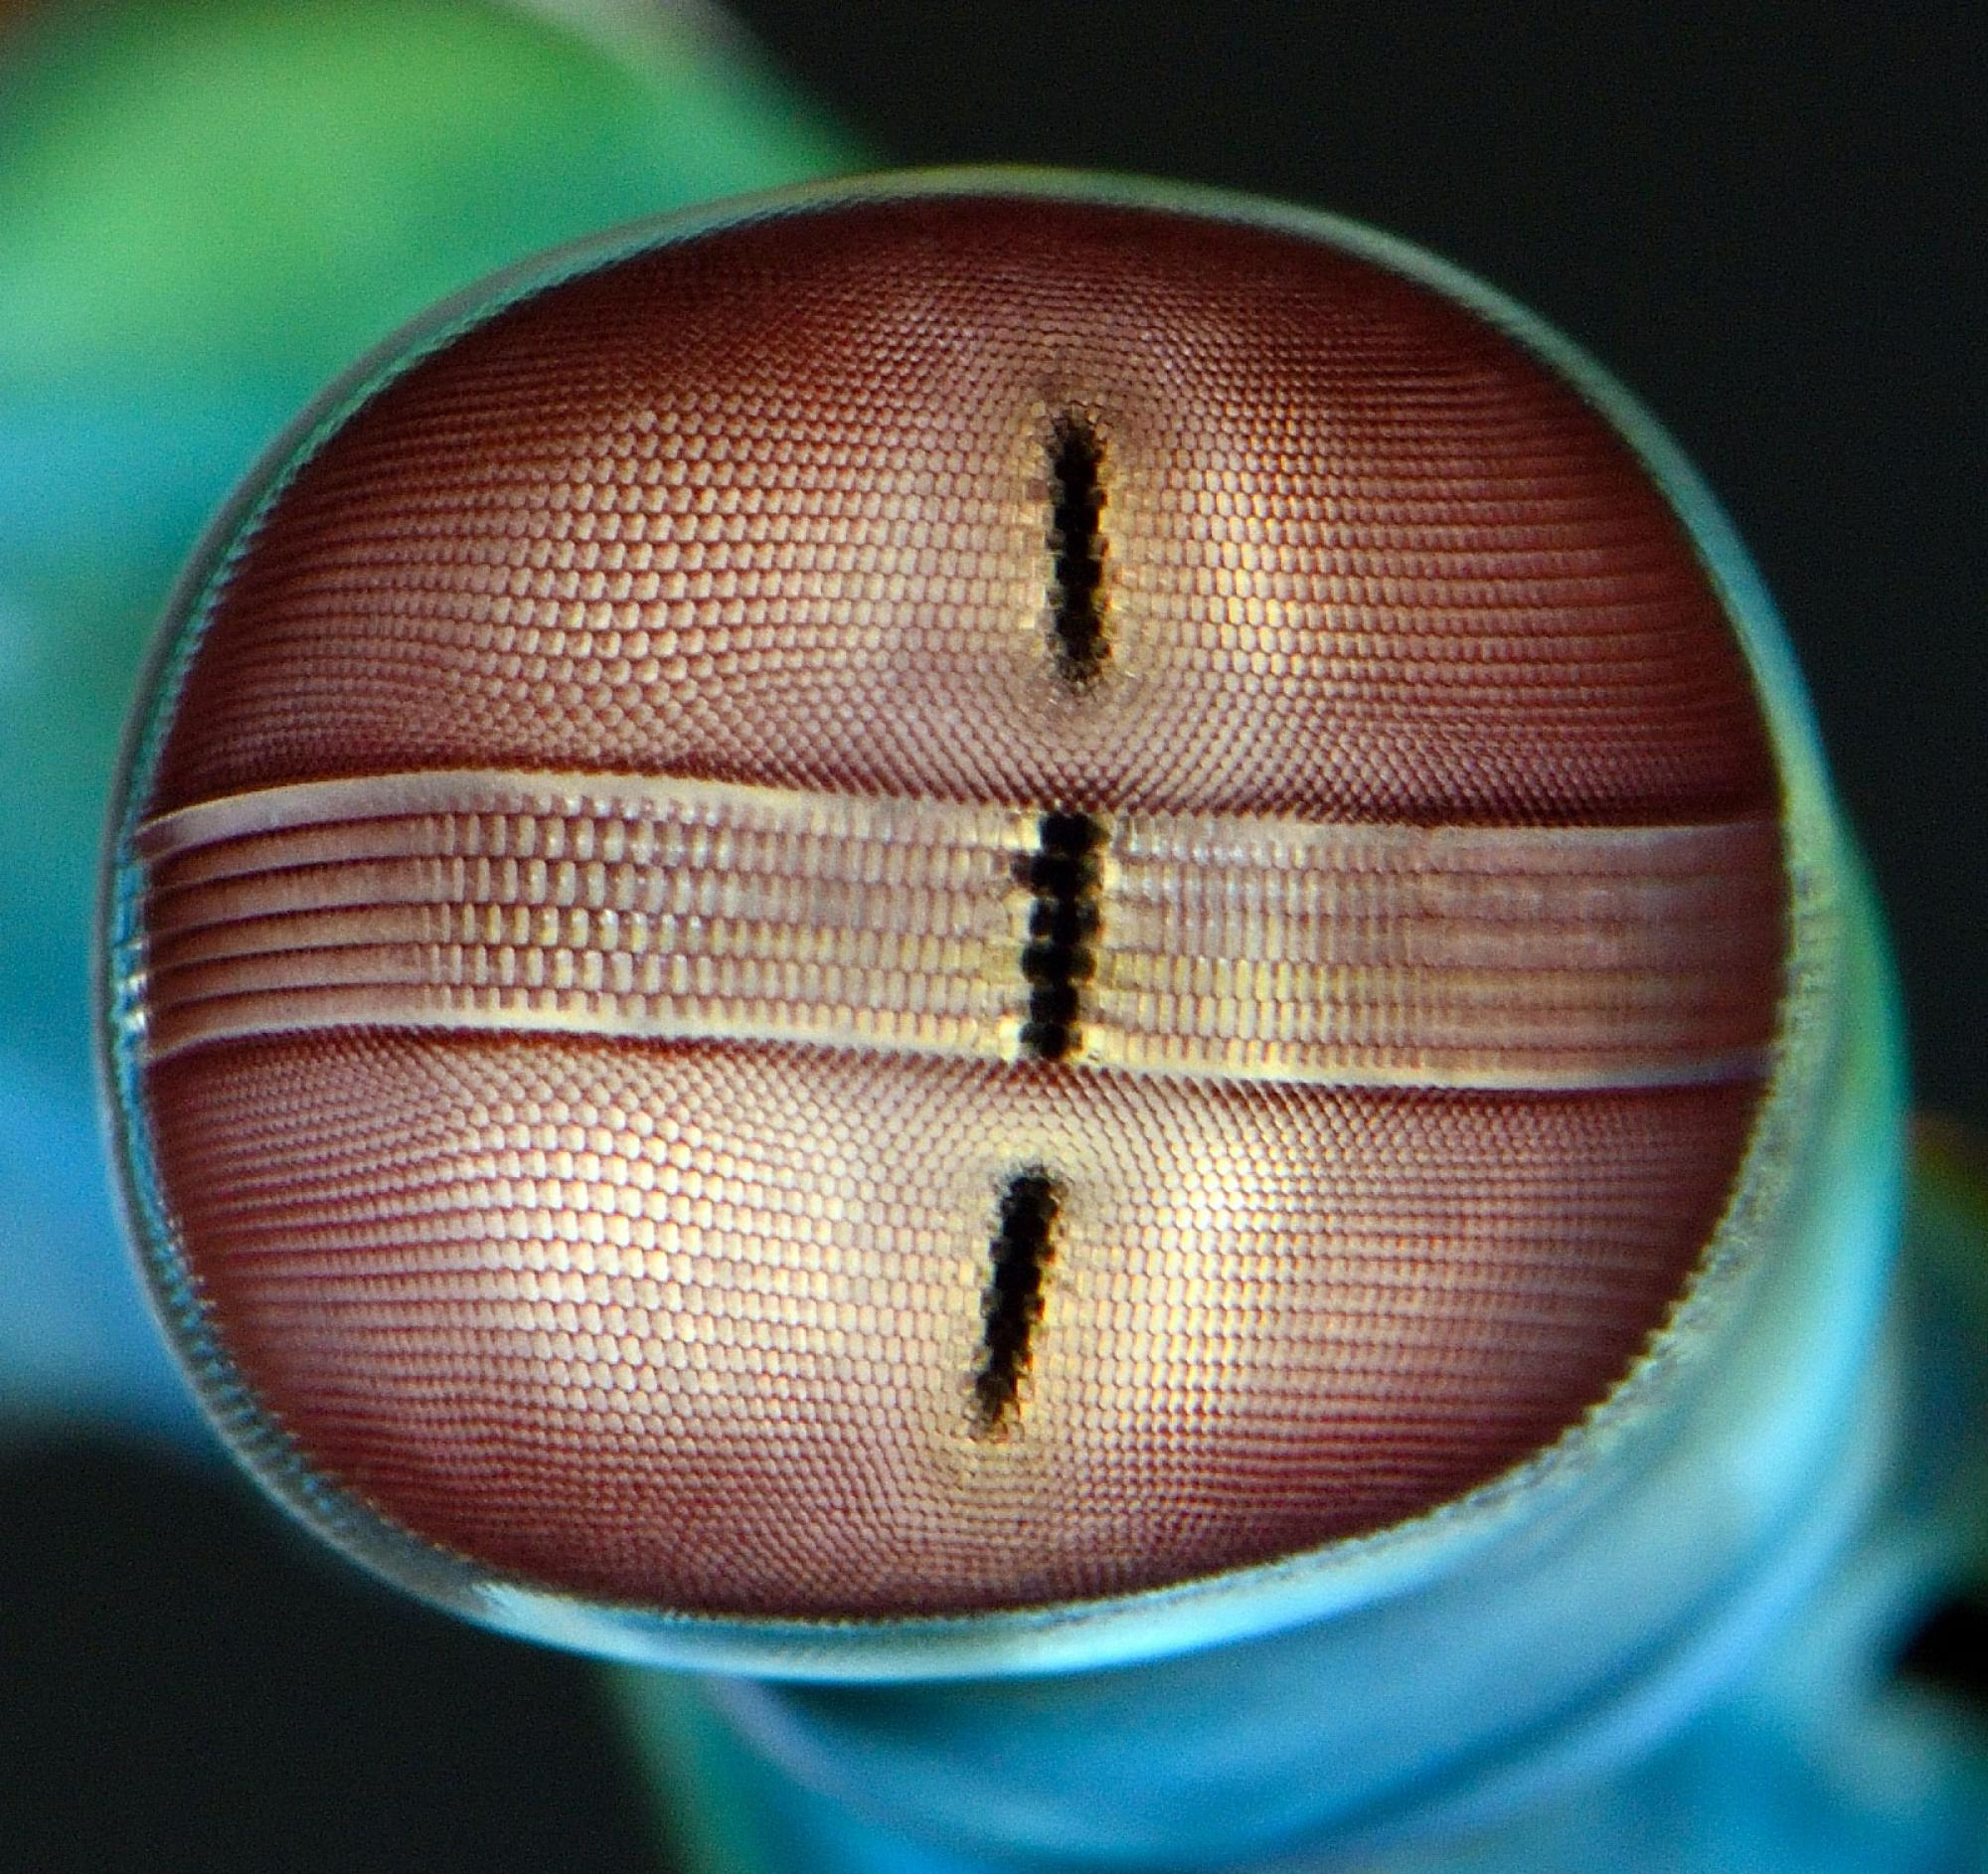 A close-up of the unique architecture of the mantis shrimp eye.